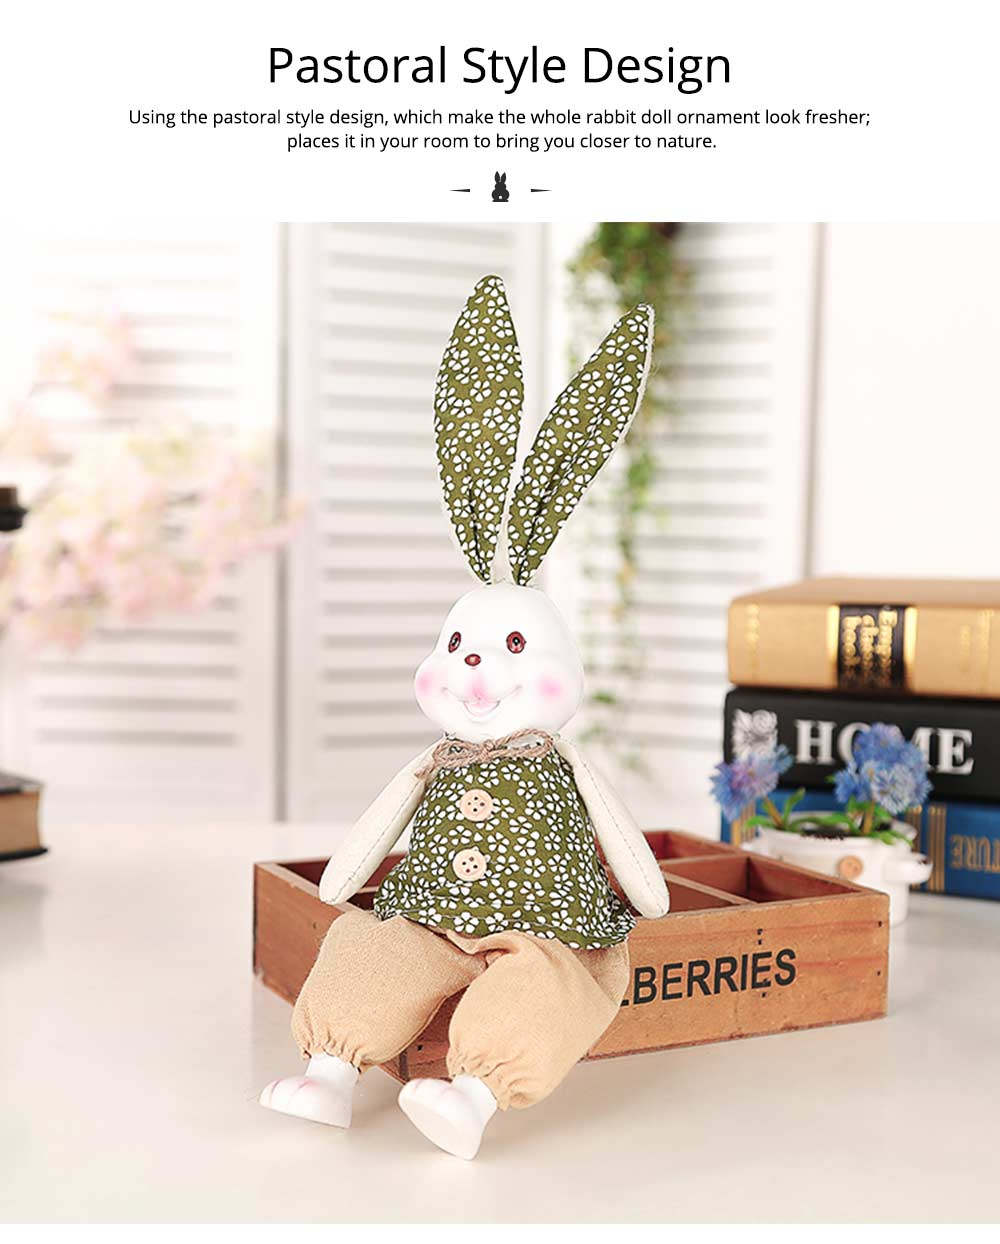 Resin Rabbit Doll Ornaments, Easter Bunny Ornaments Creative Gift for Birthday Wedding Household Decoration 7